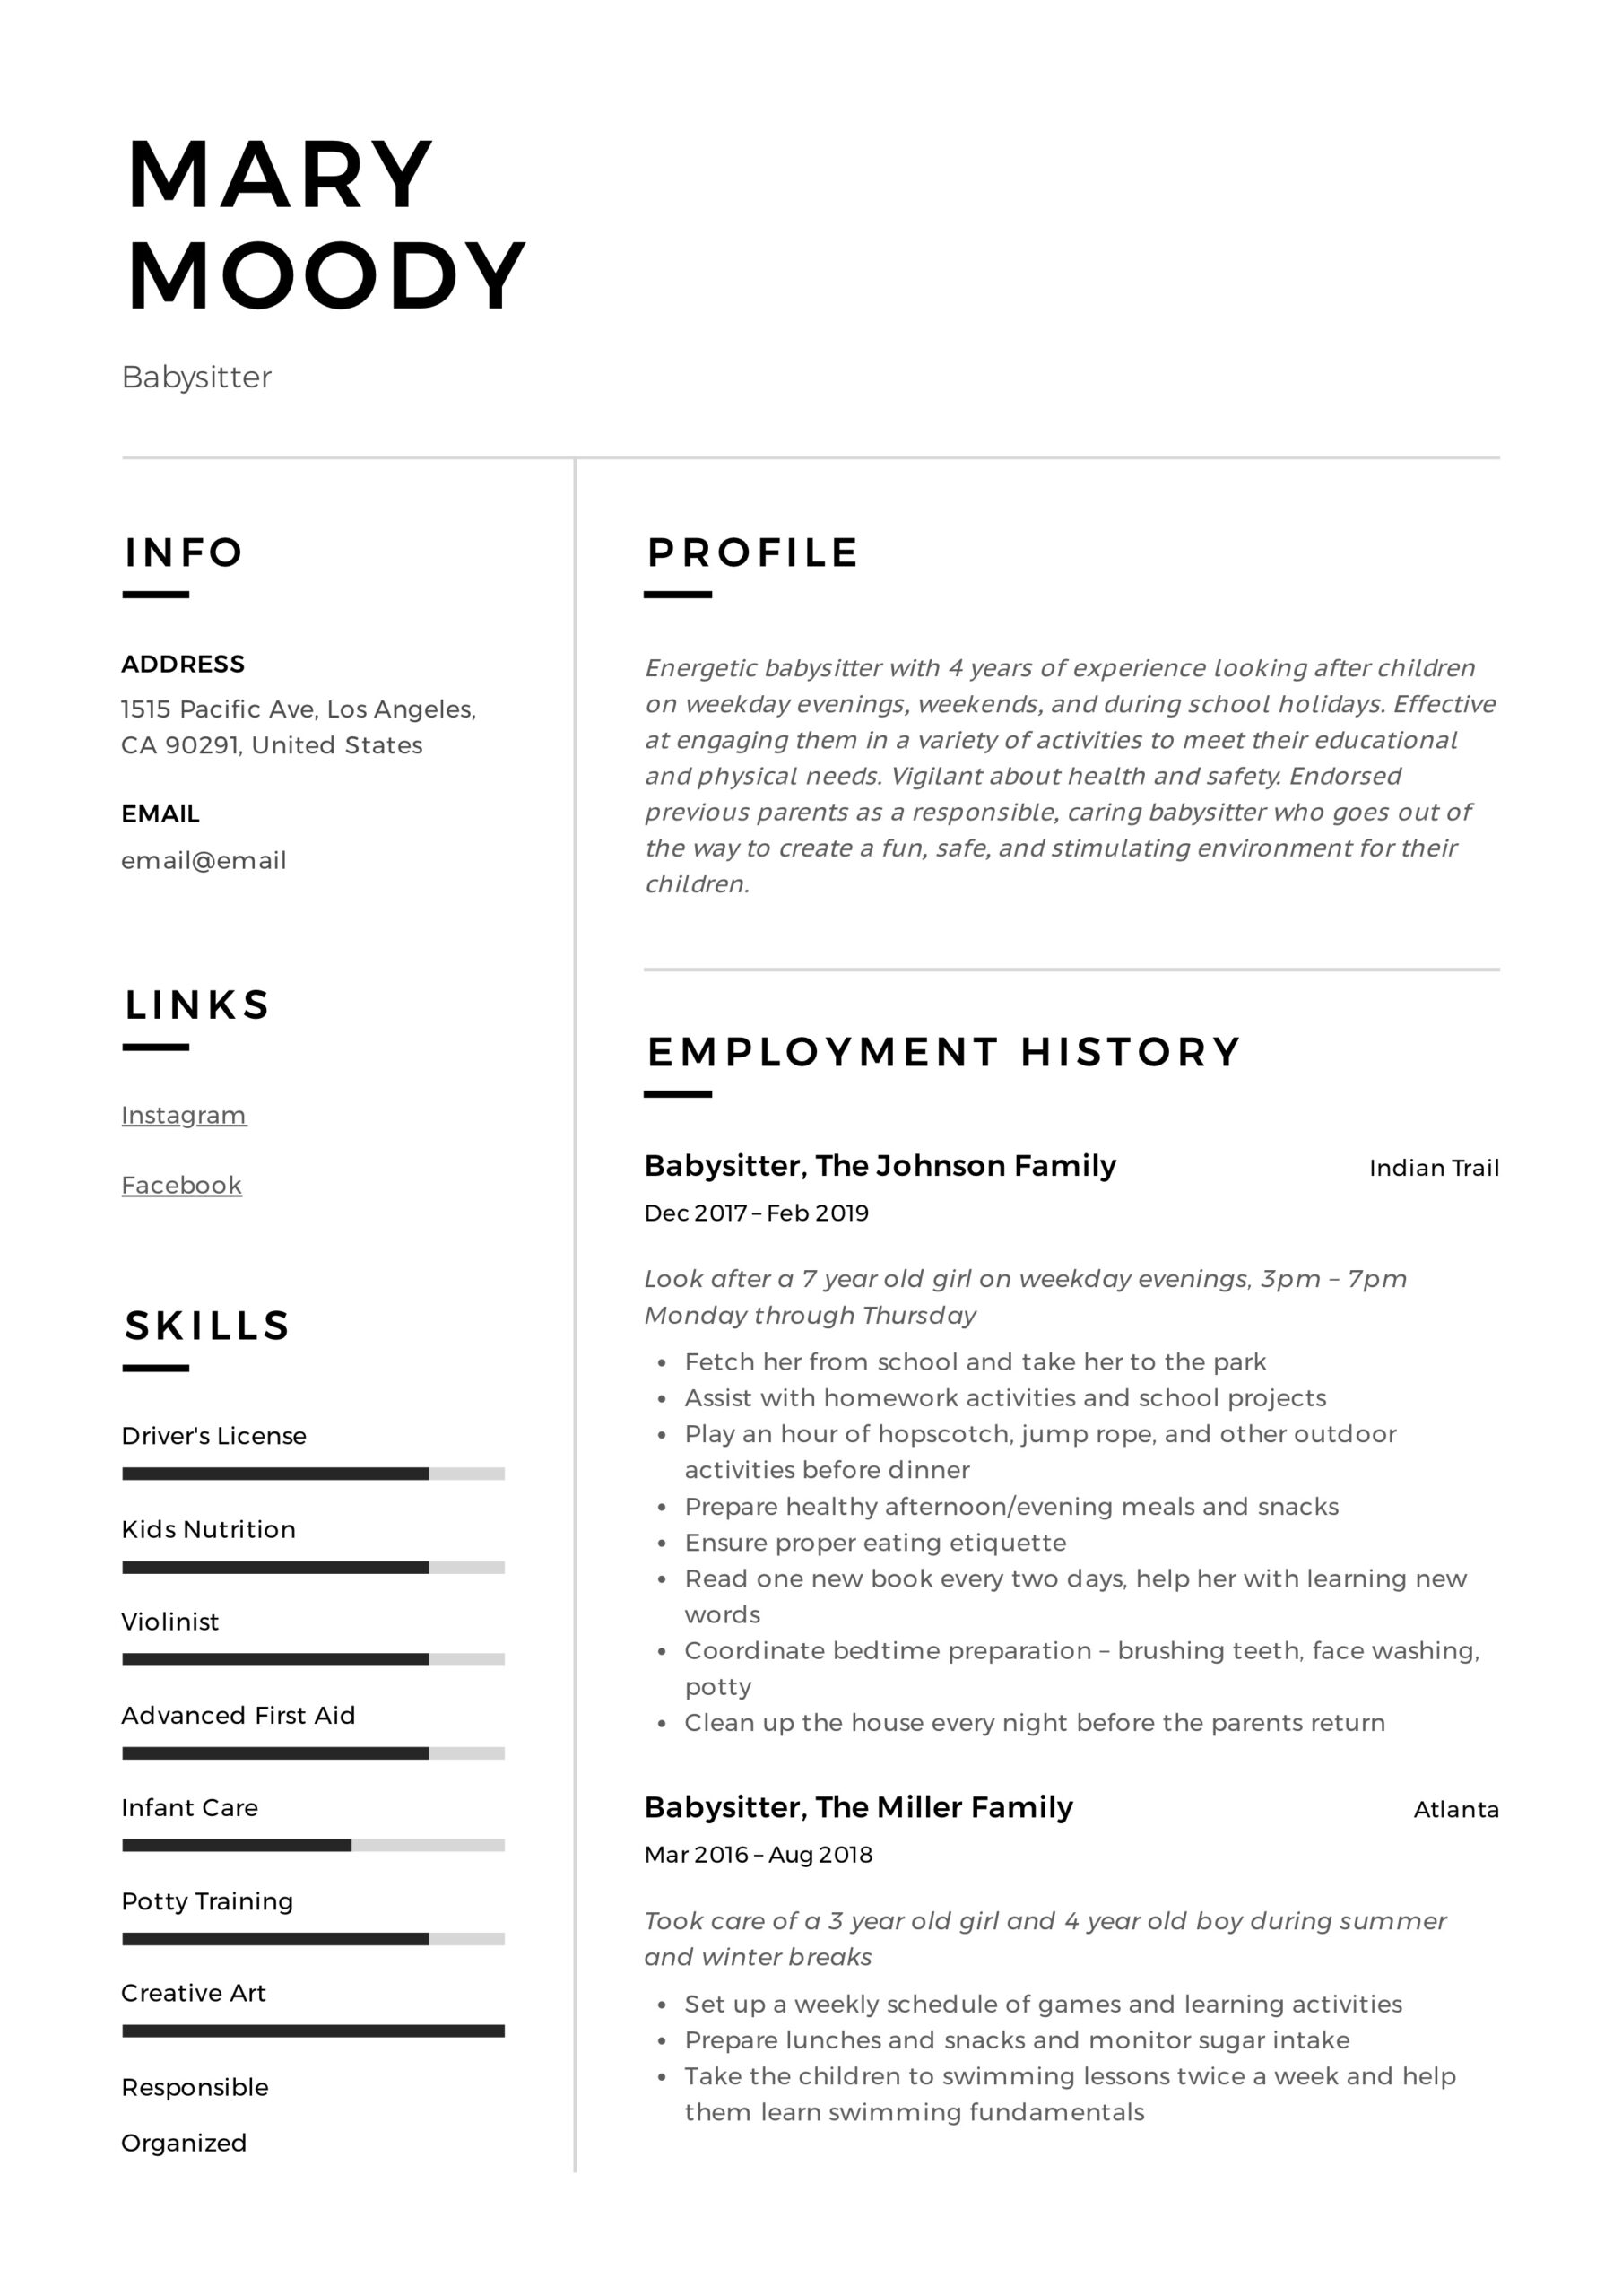 babysitter resume examples writing guide pdf duties of for mary couples templates massage Resume Duties Of Babysitter For Resume